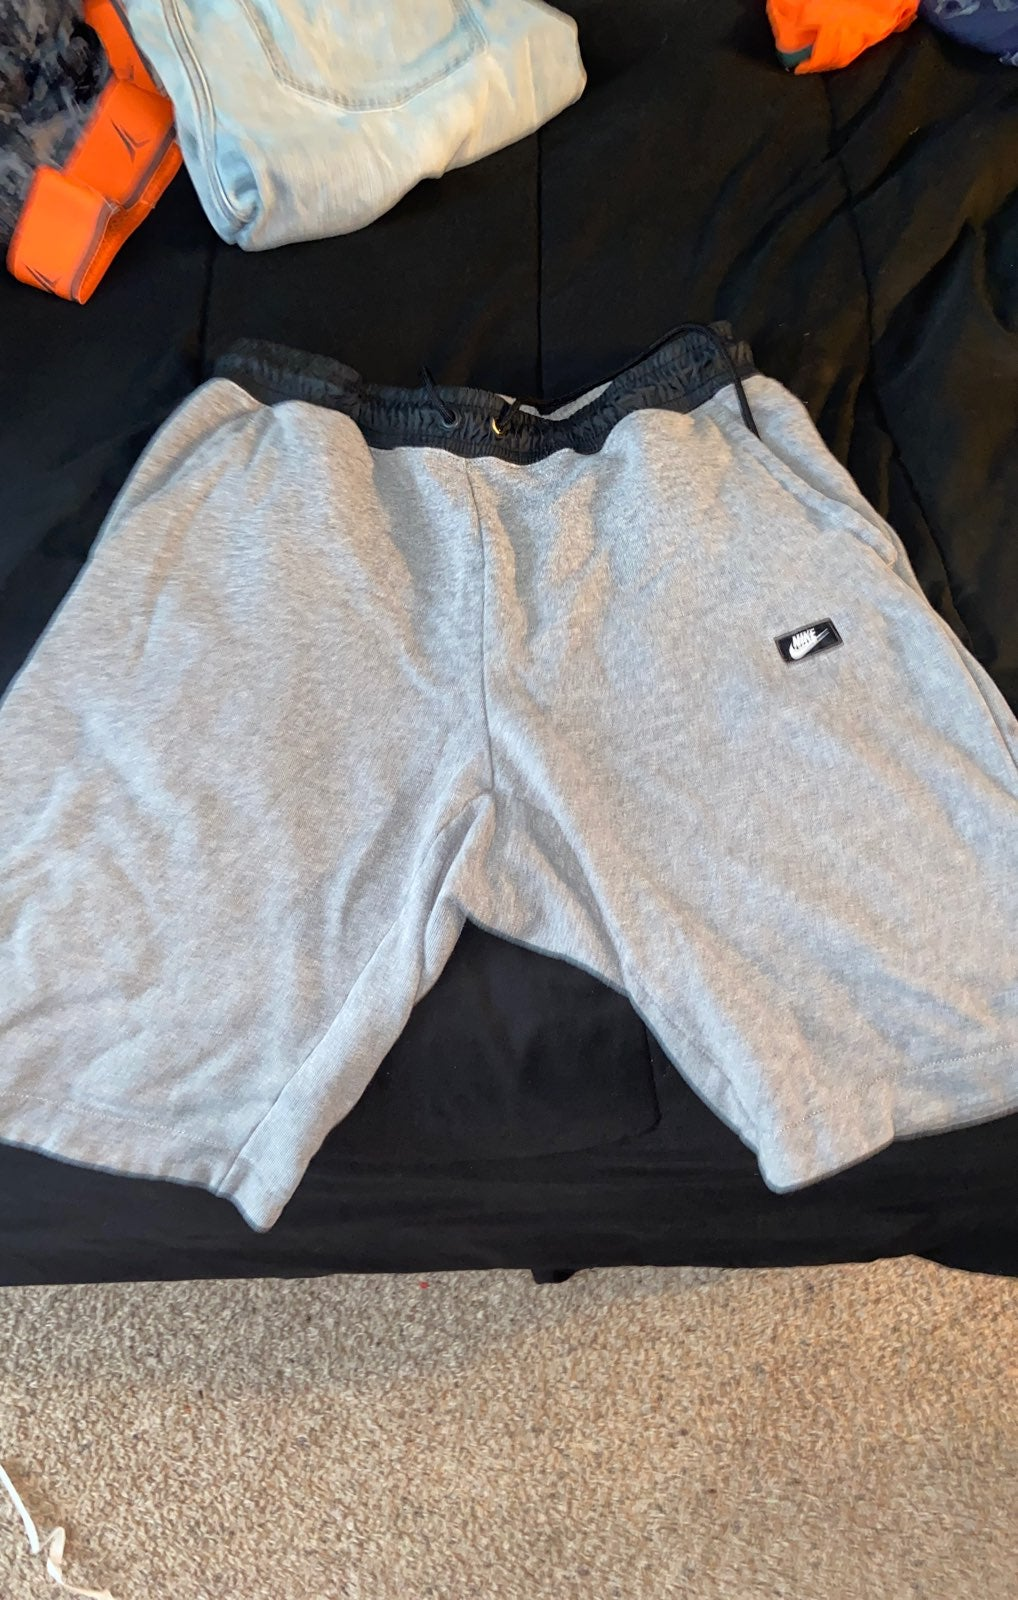 Nike fleece shorts